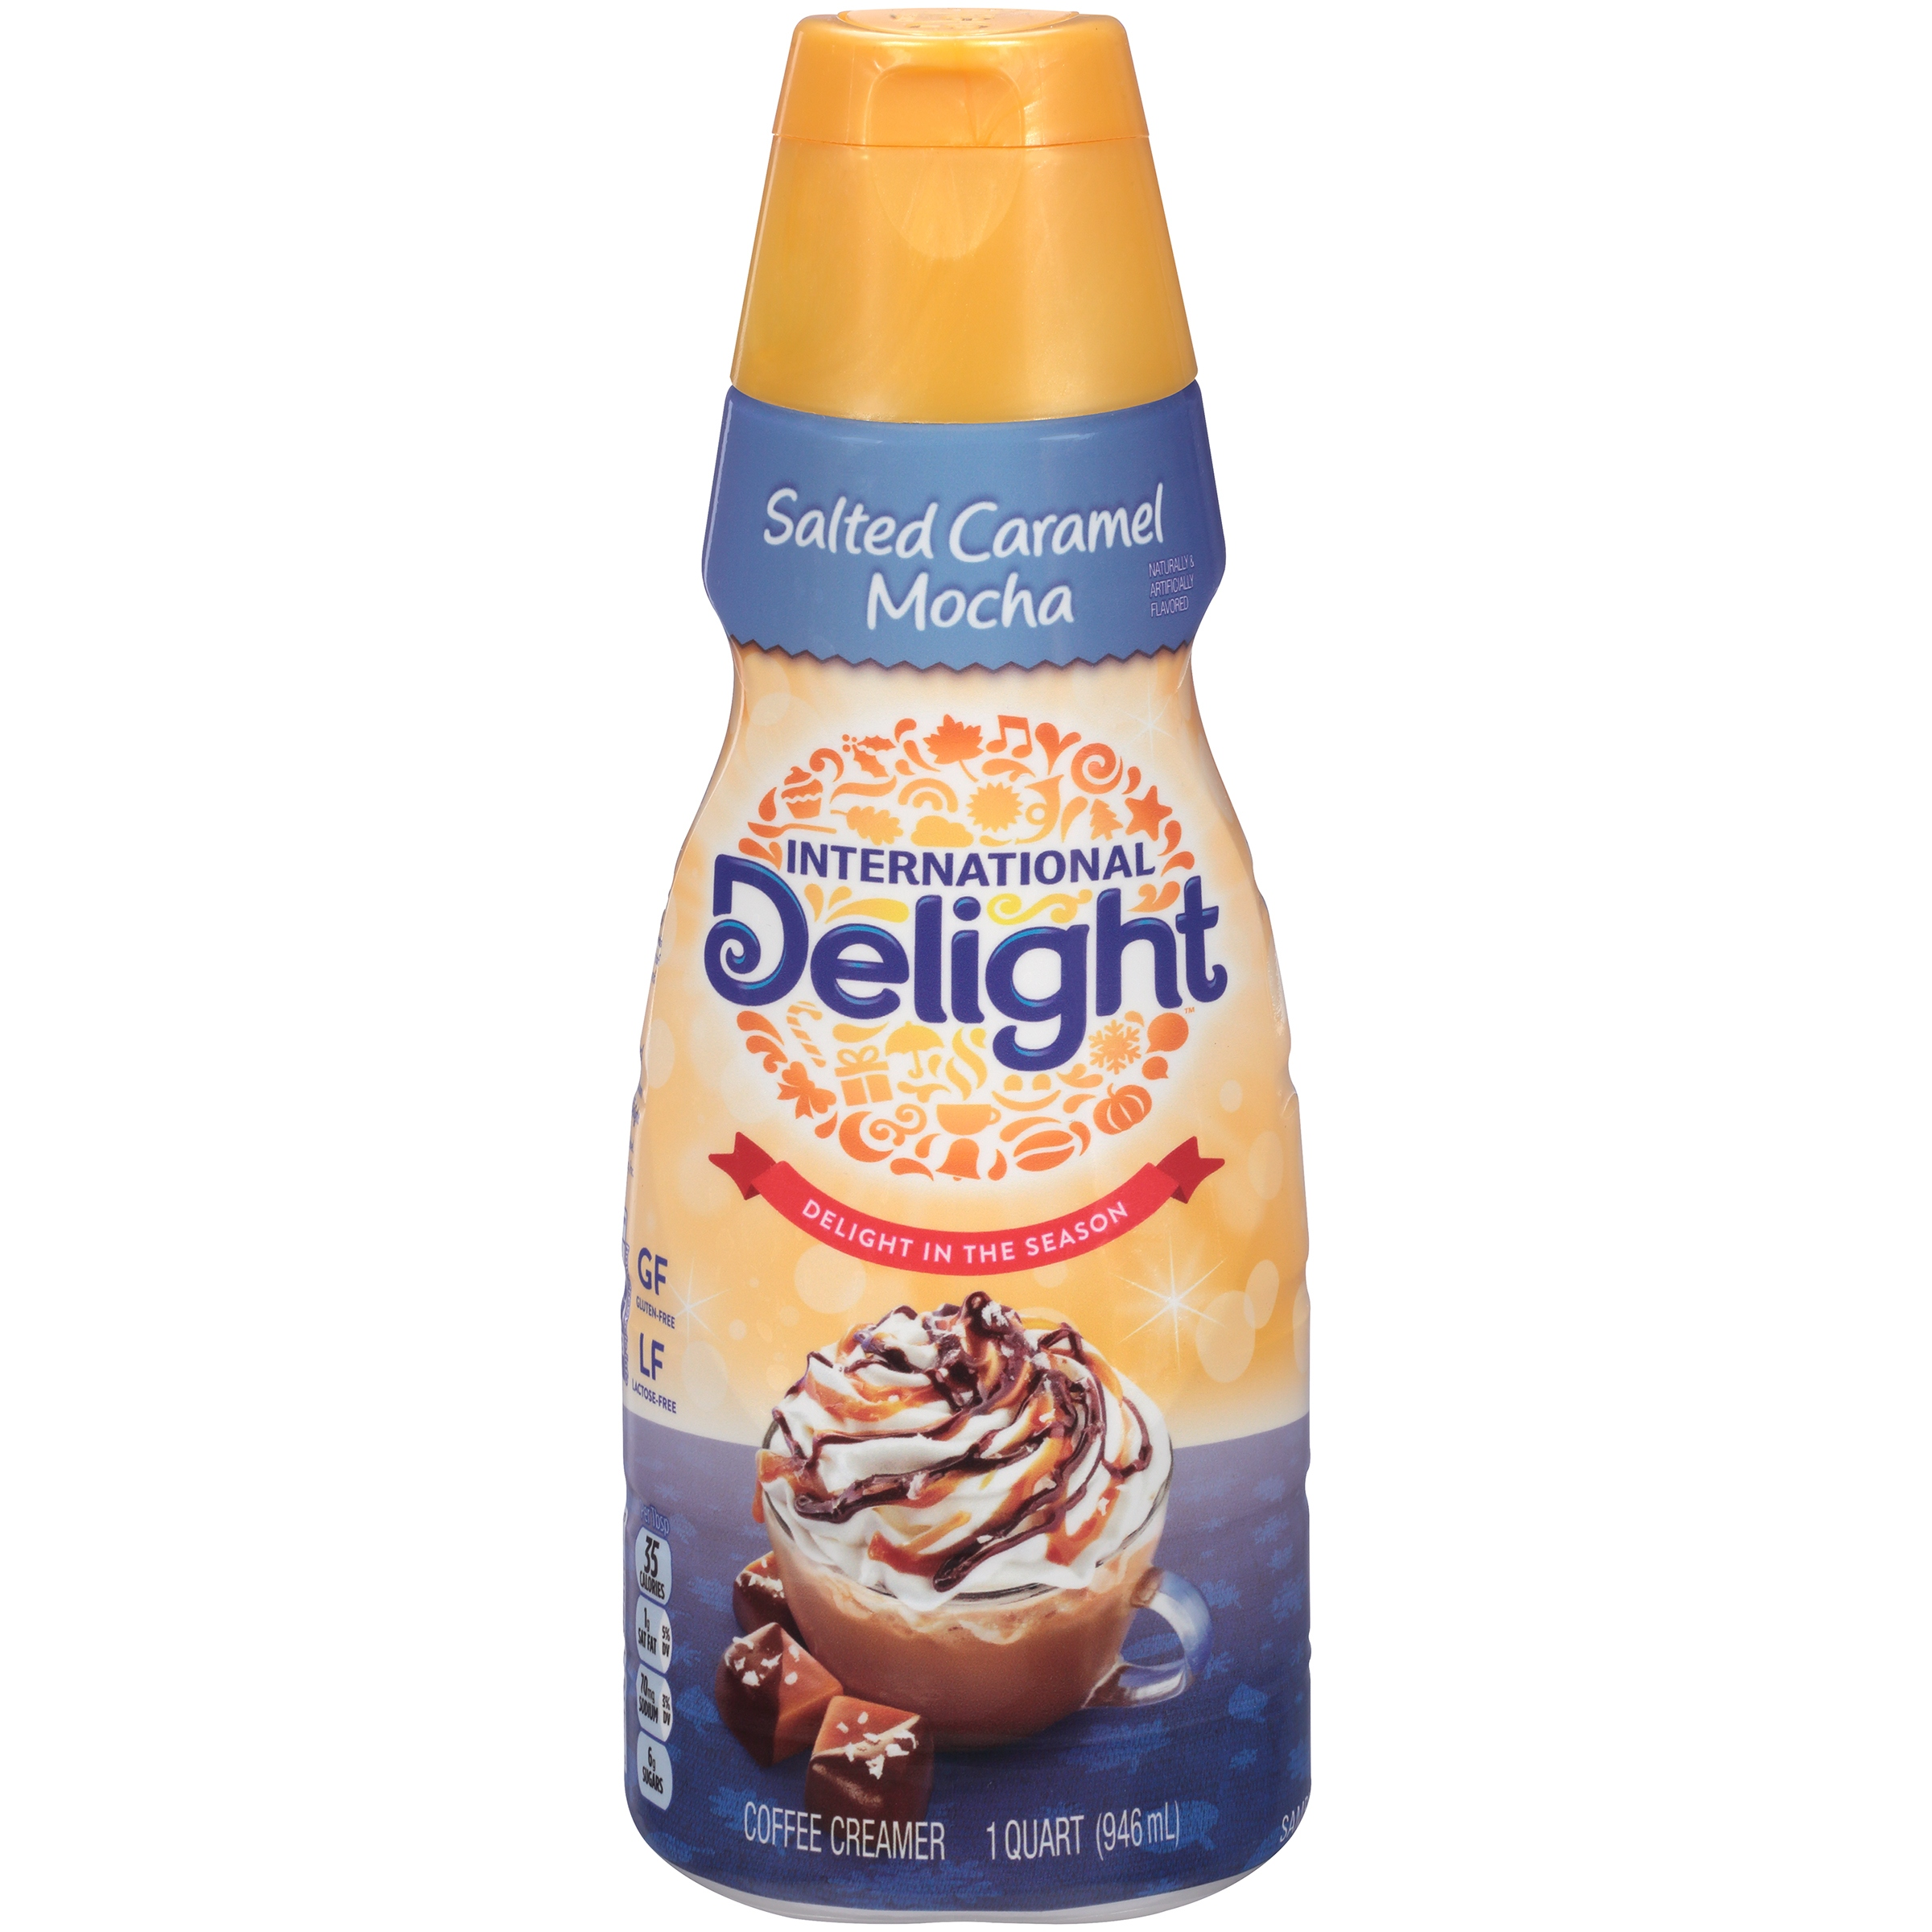 International Delight Salted Caramel Mocha Coffee Creamer, 32 oz